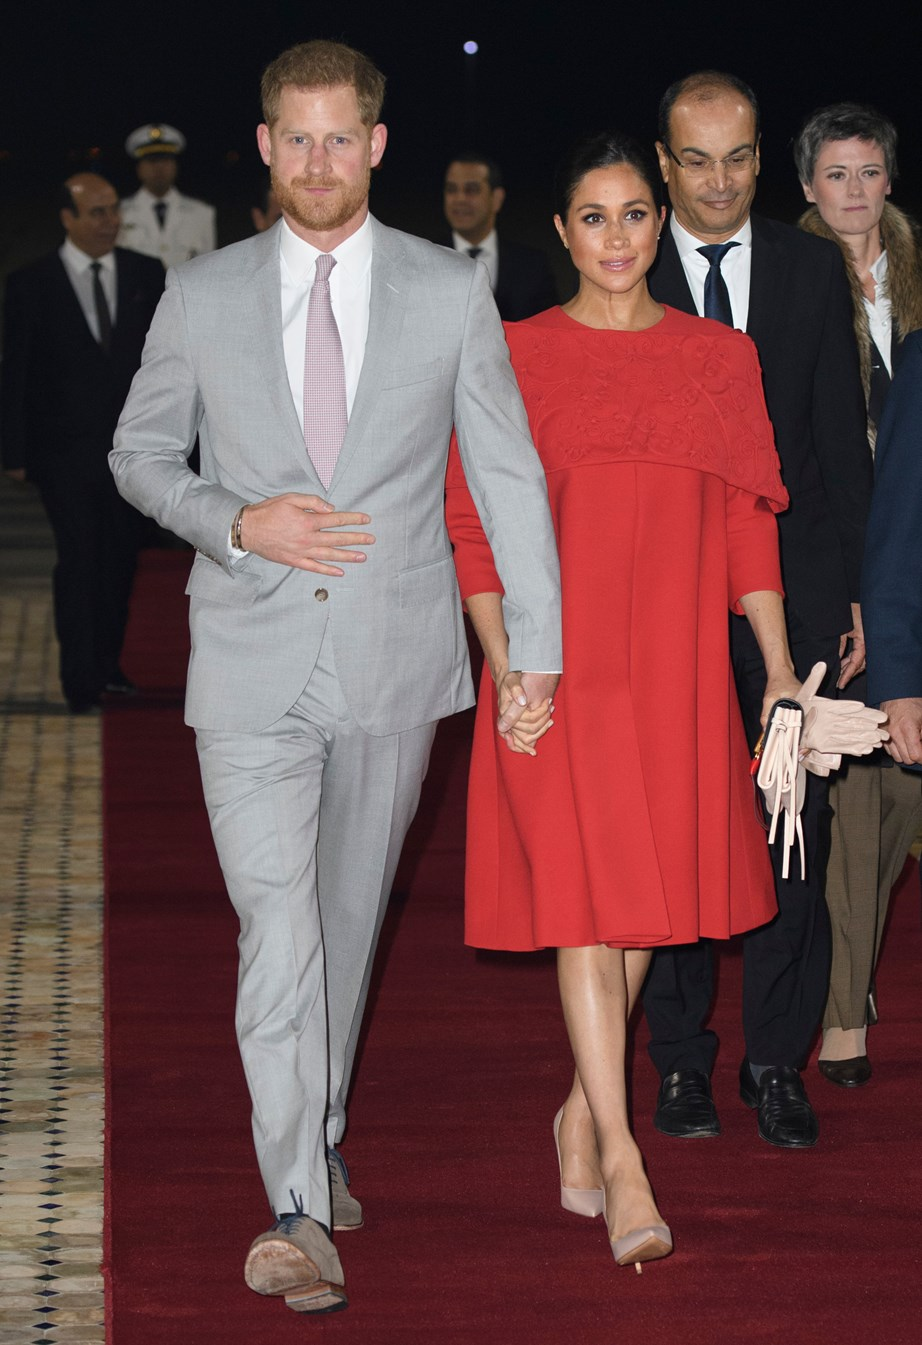 The Duke and Duchess of Sussex will be walking the red carpet of *The Lion King*'s European premiere on Sunday. *(Image: Getty)*